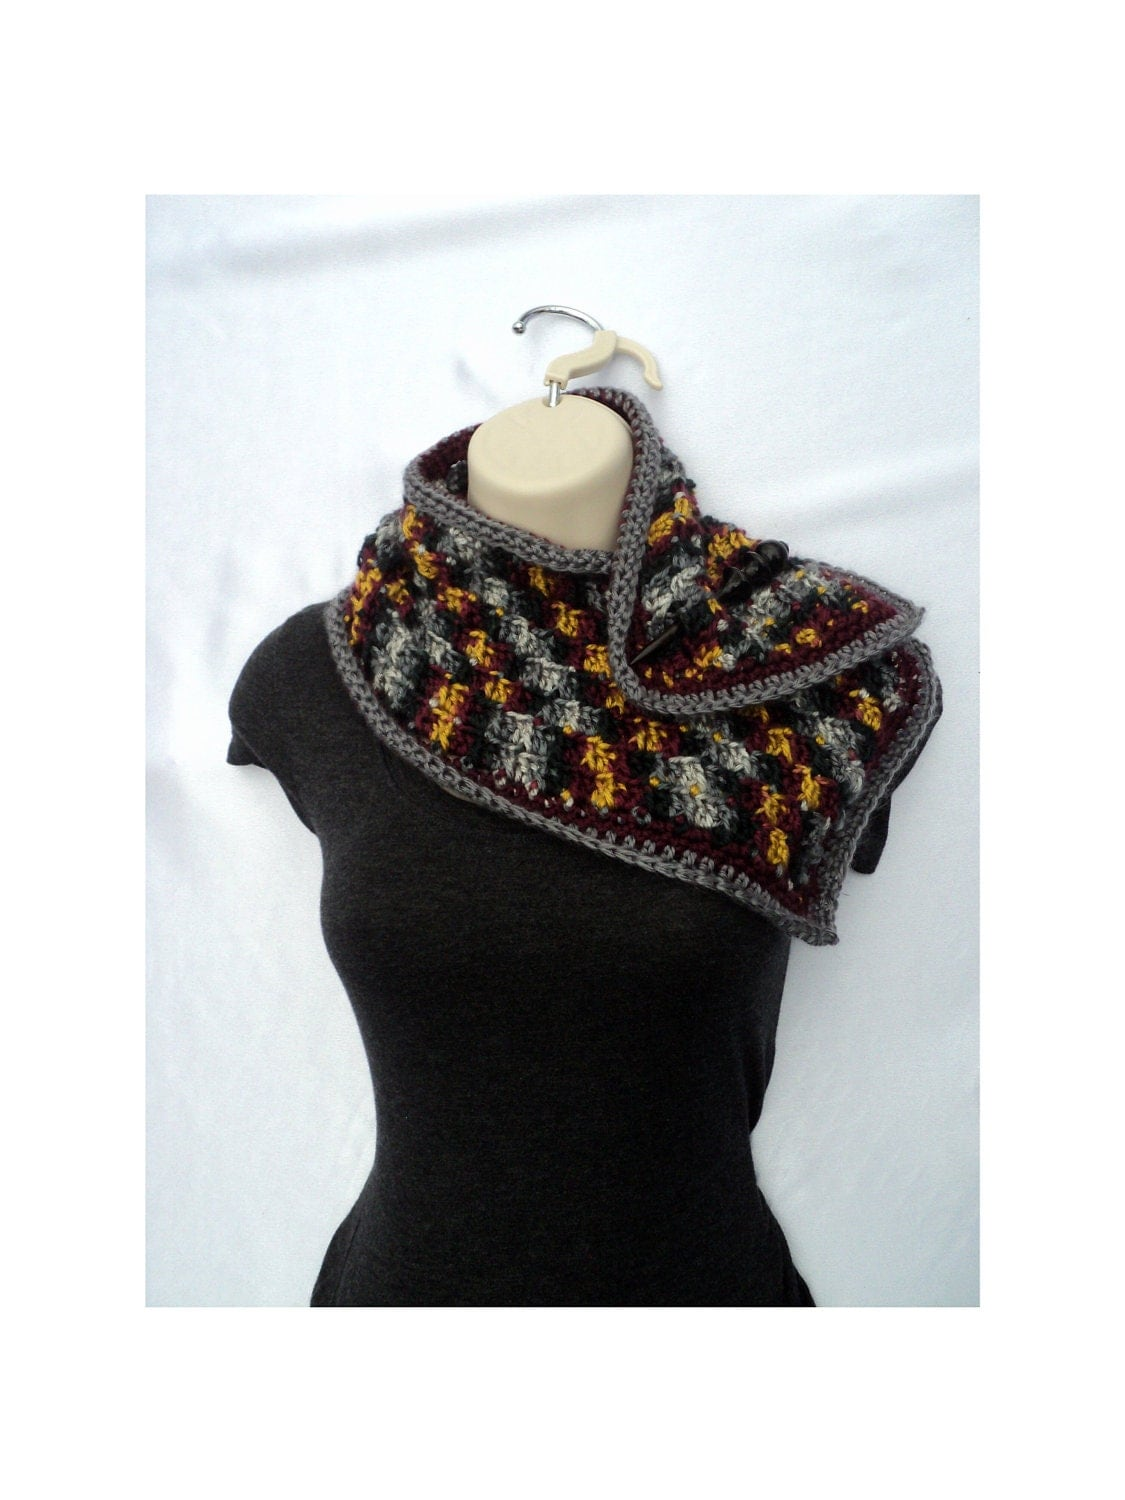 Crochet Patterns Neck Scarves : ... Neck Scarf in two yarn weights Multi Neck Scarves Crochet Patterns